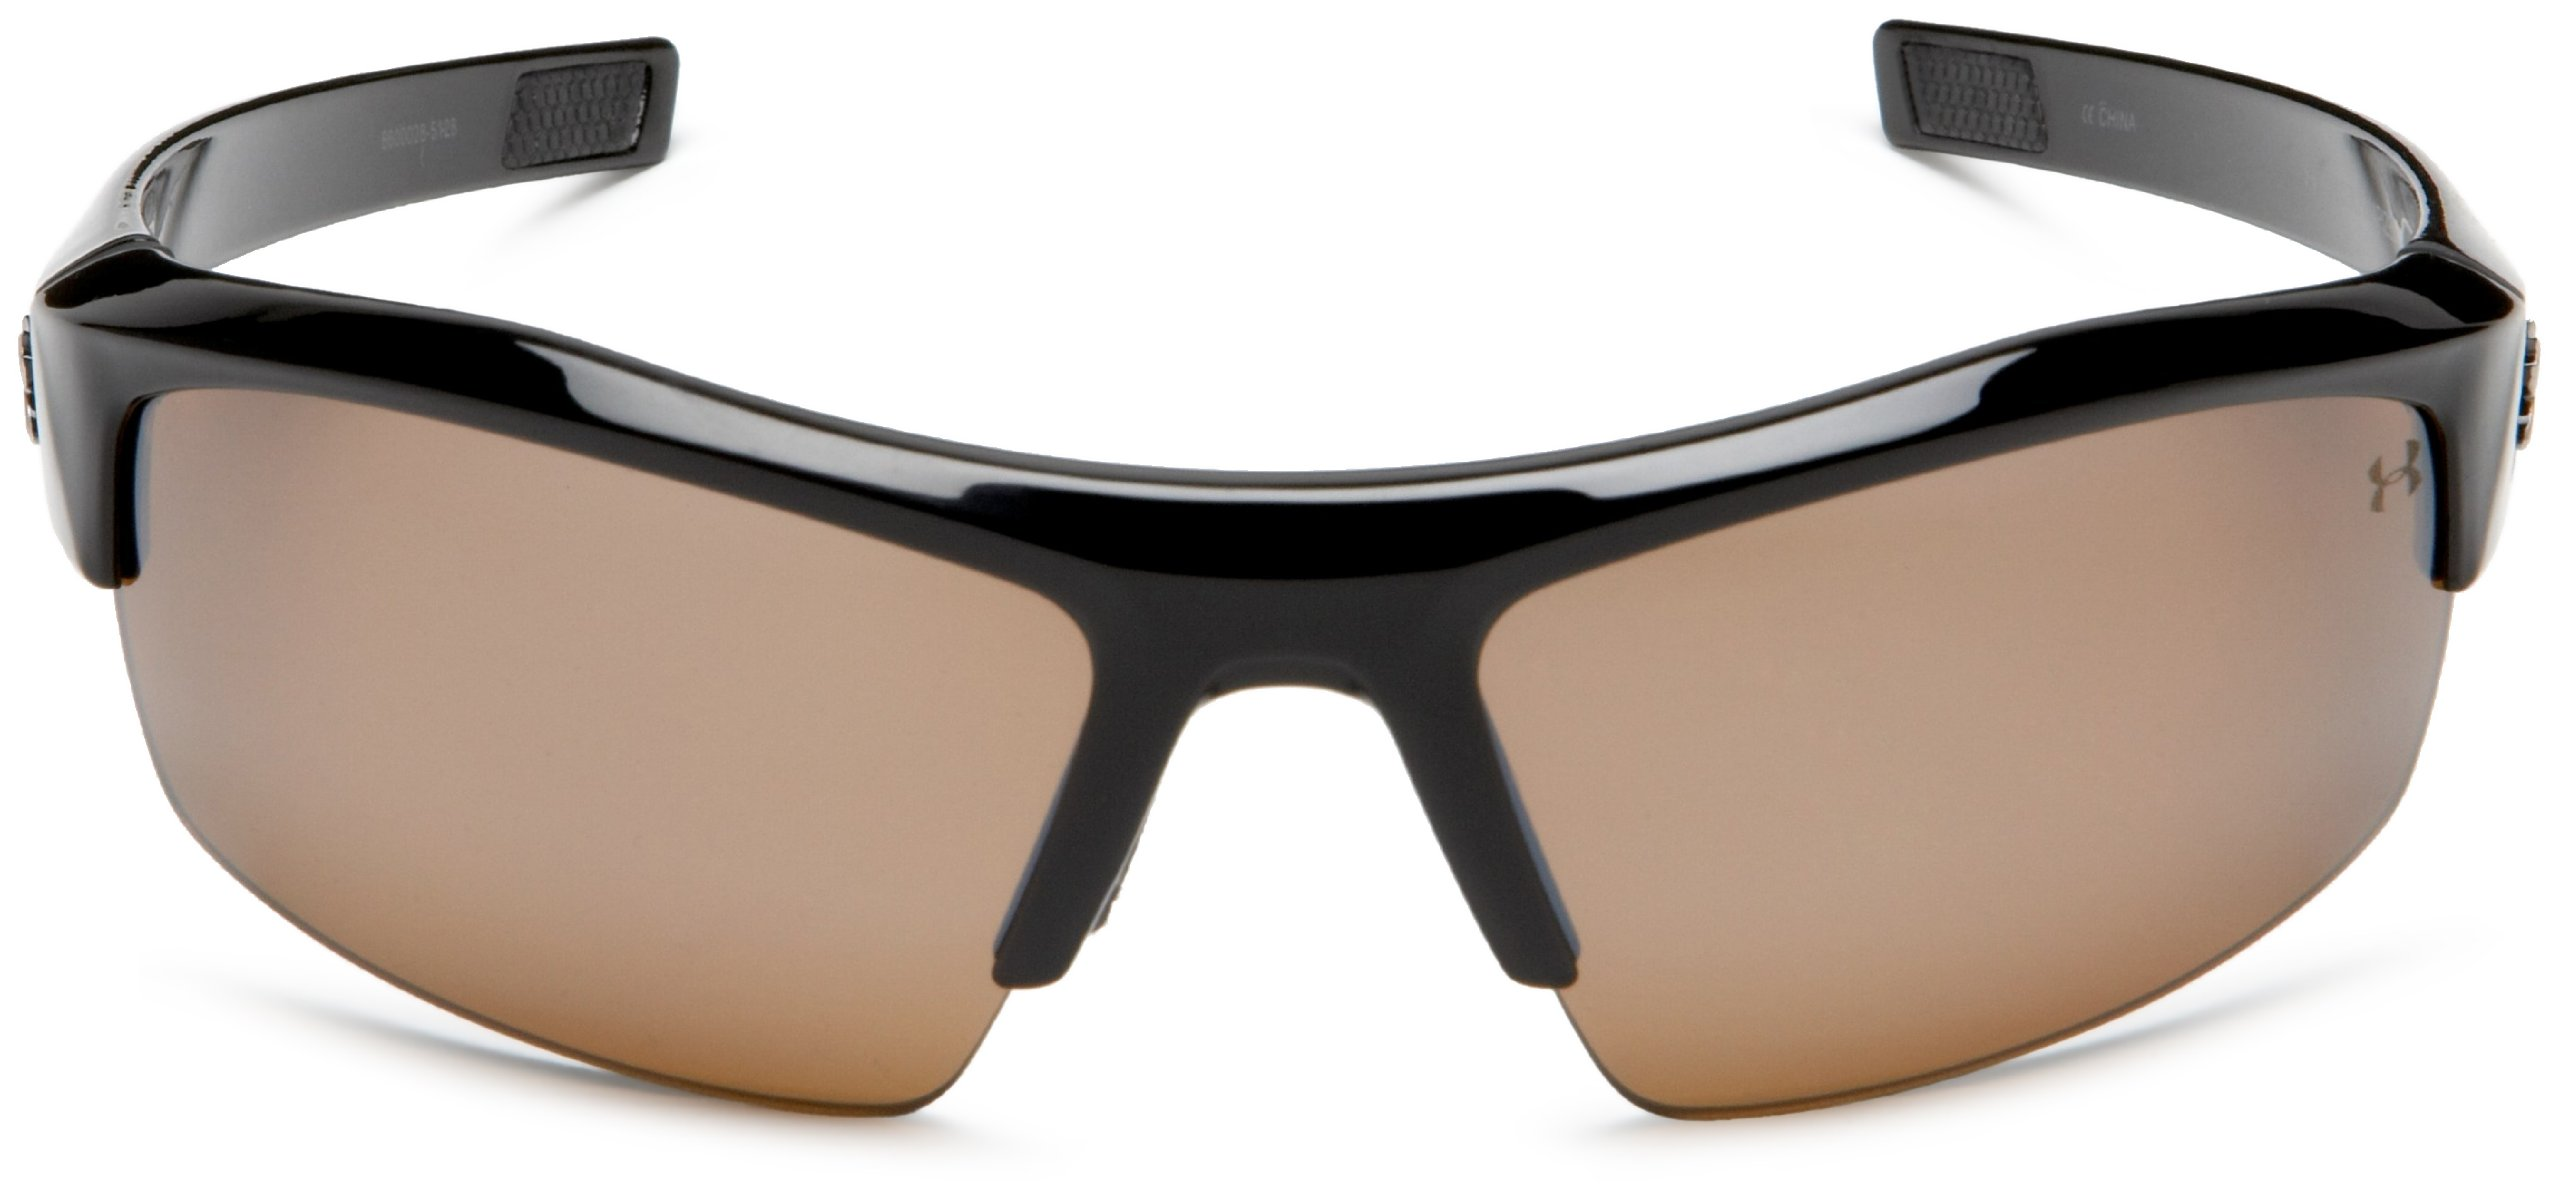 Under Armour Igniter Polarized Multiflection Sunglasses, Shiny Black Frame/Brown Lens, one size by Under Armour (Image #2)